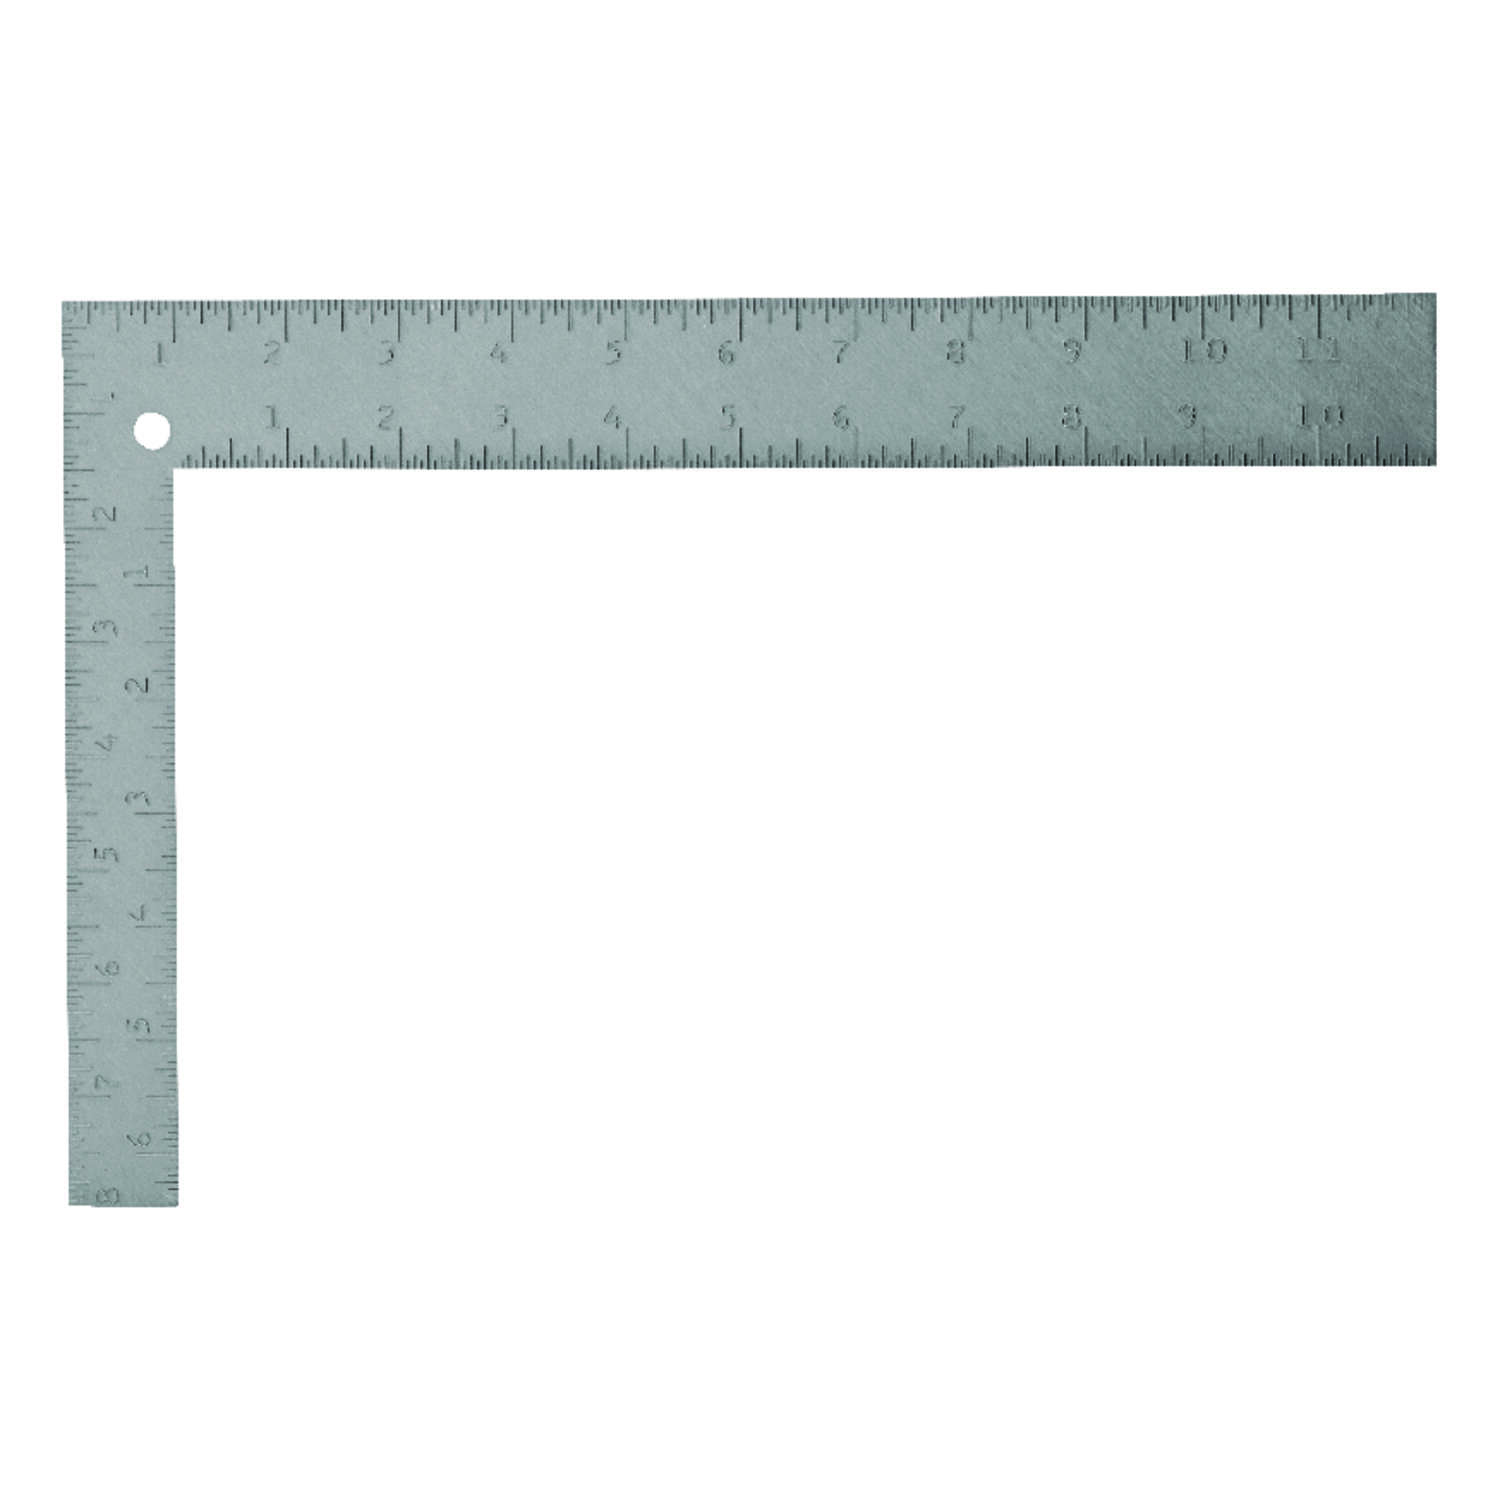 Stanley  12 in. L x 8 in. H Steel  Carpenter Square  Gray